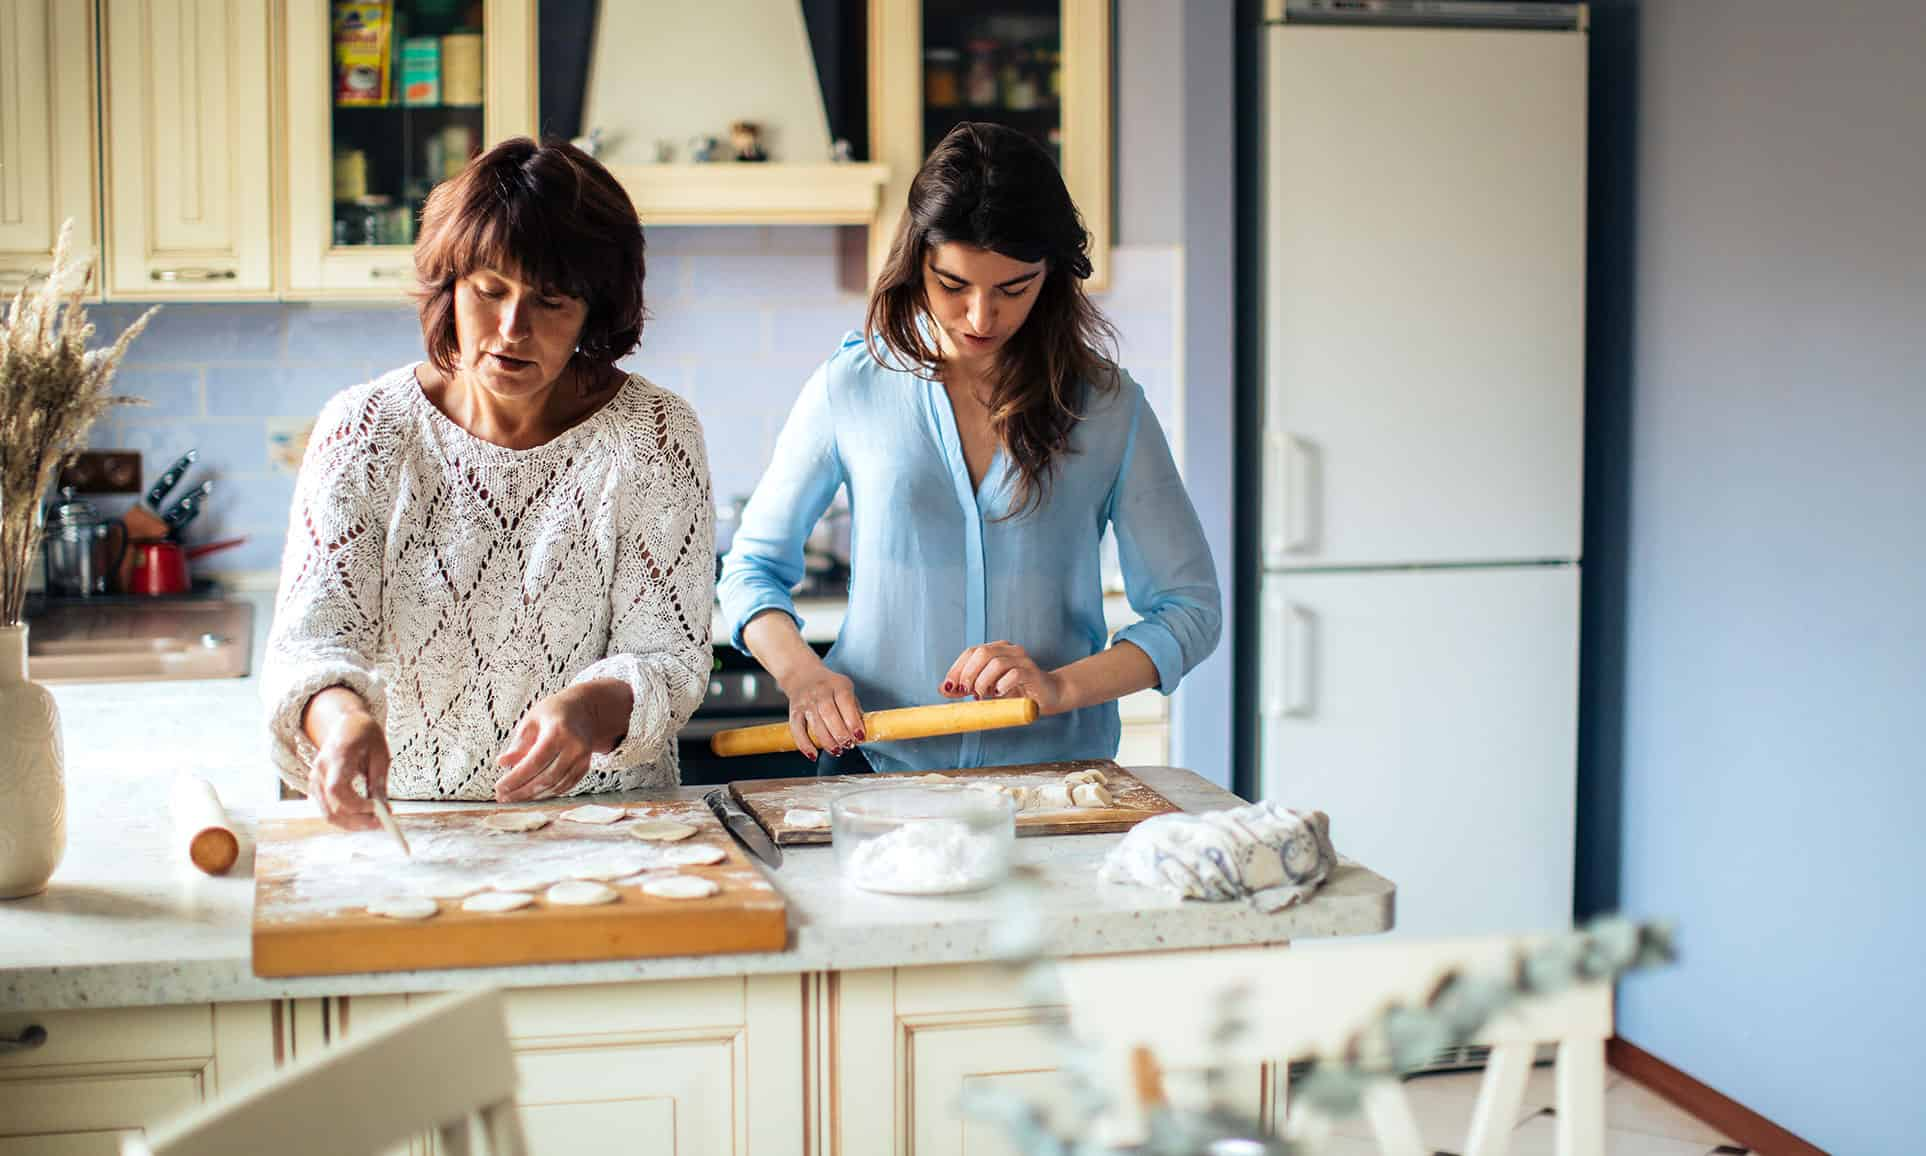 labeling food as good or bad - baking together